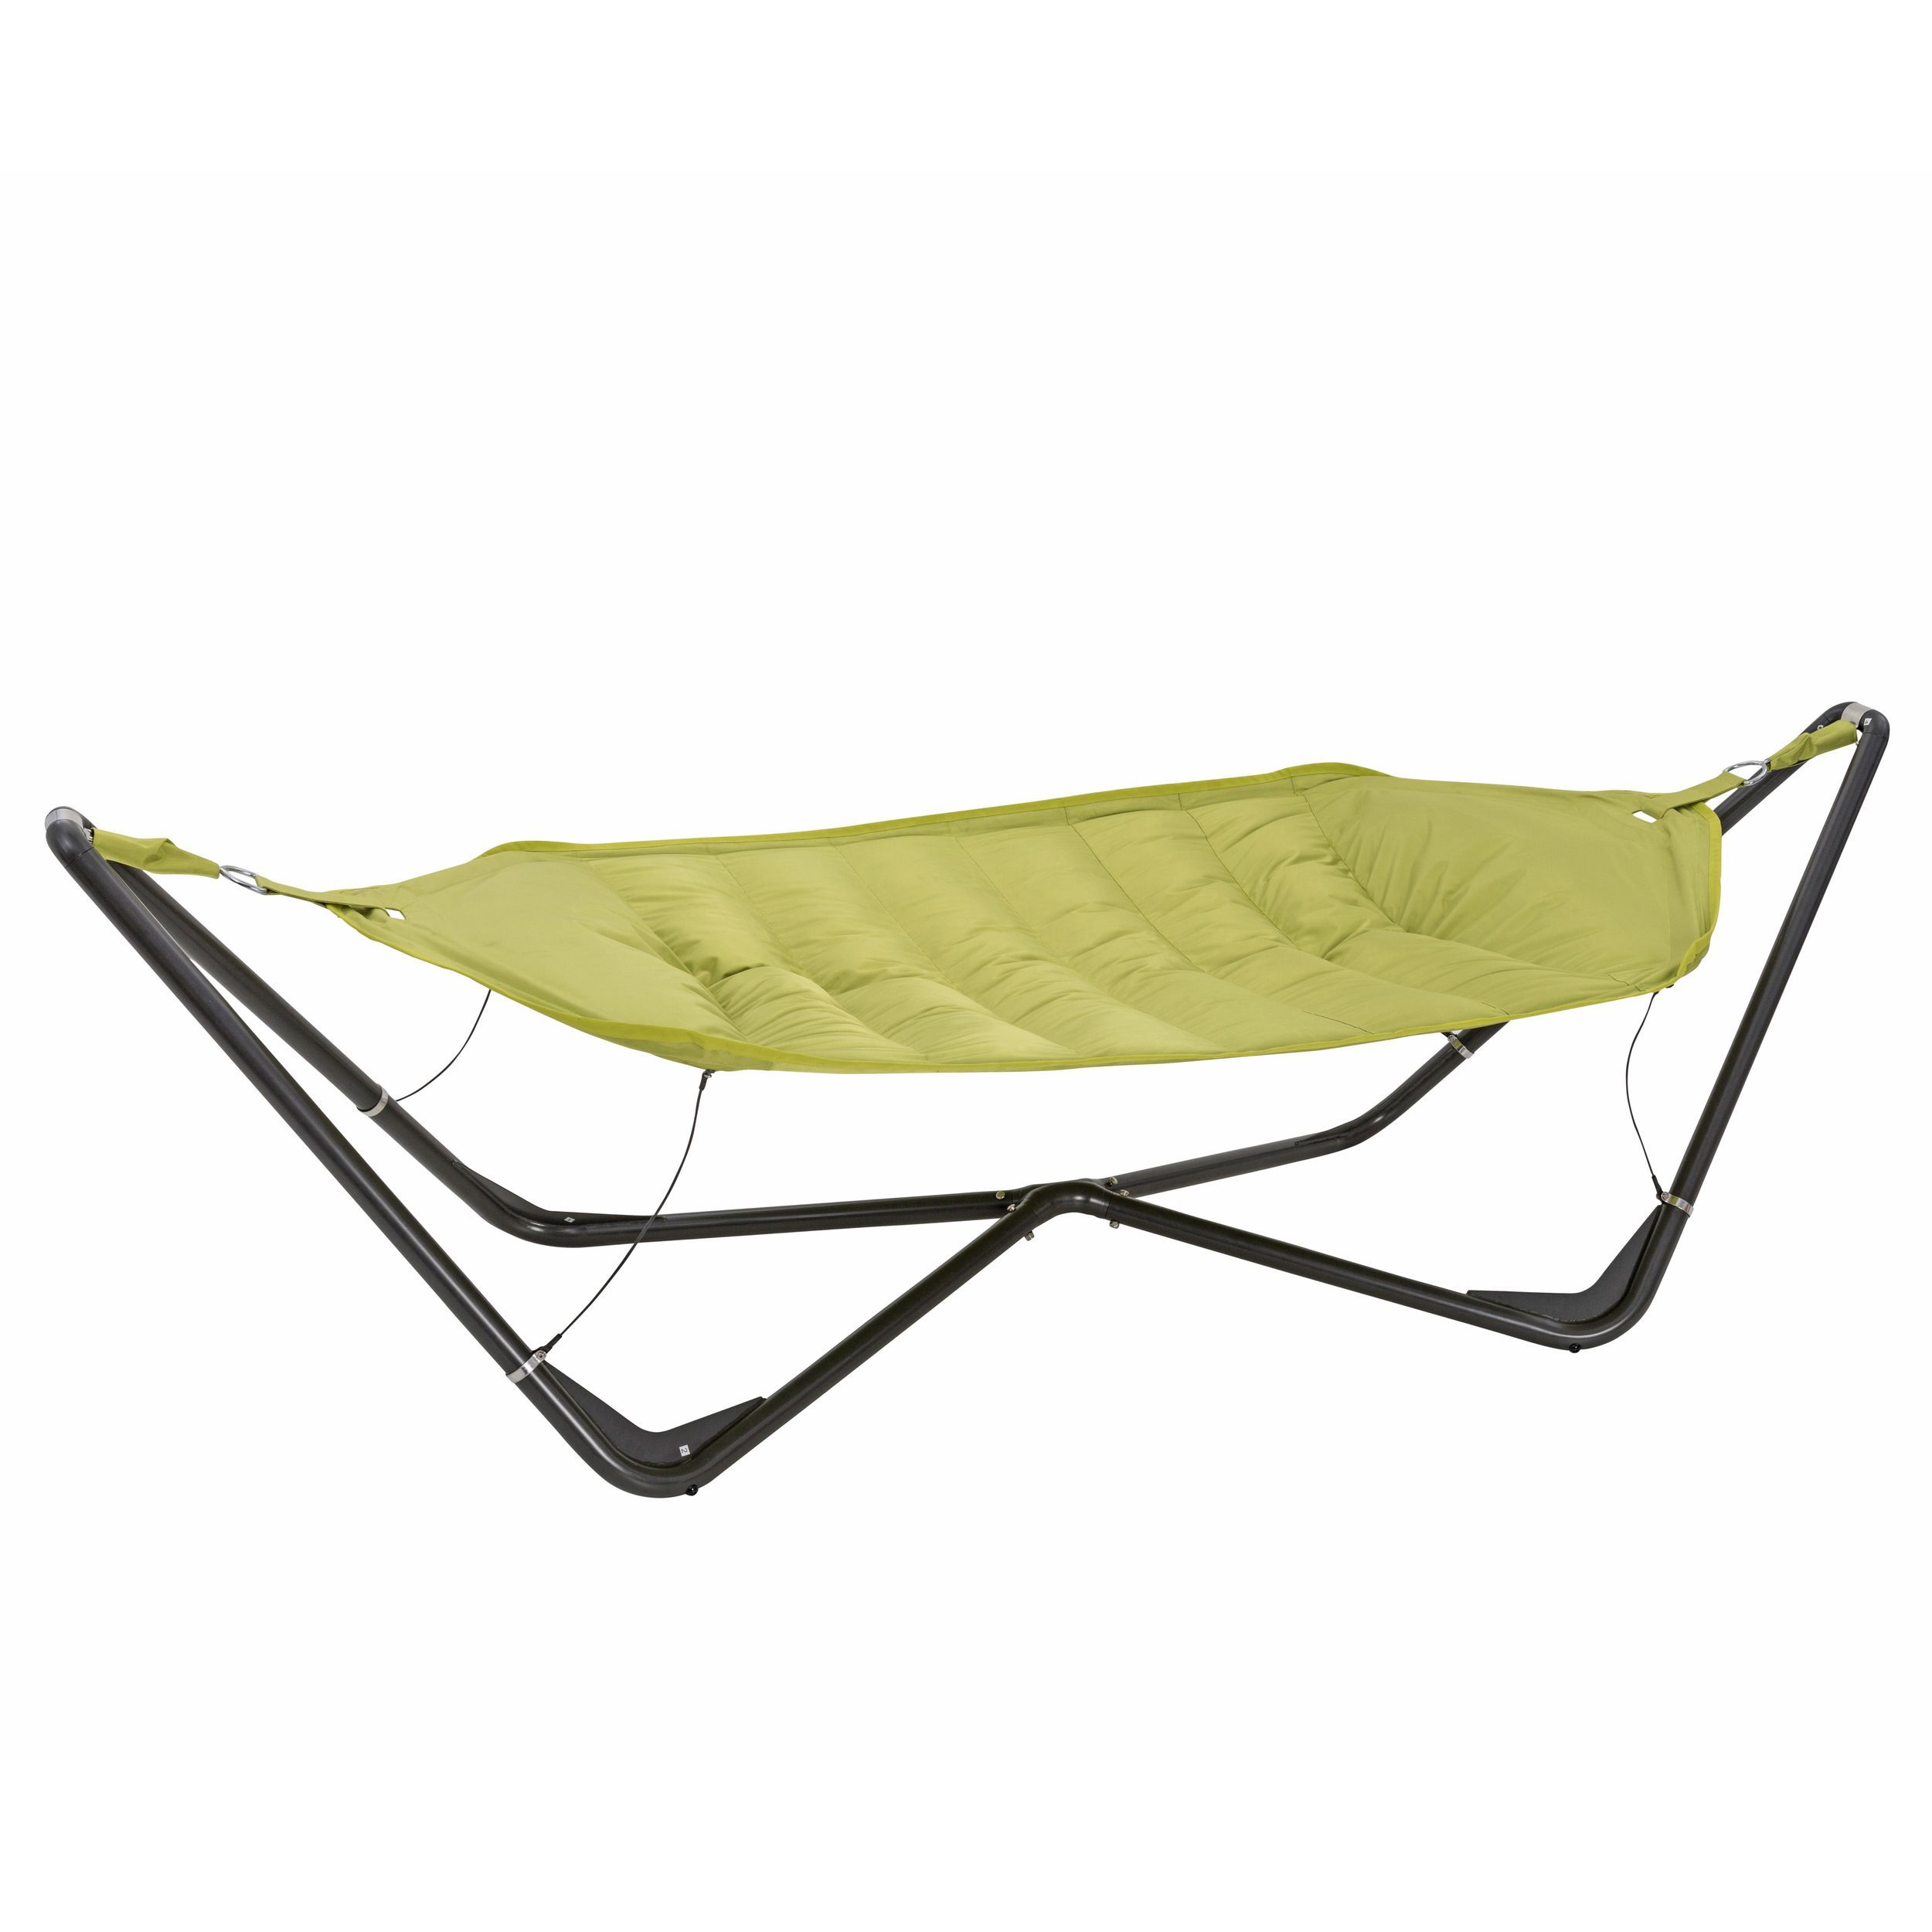 shipping x today hammock garden with home gondola overstock apple cover trueshade plus green free foot product